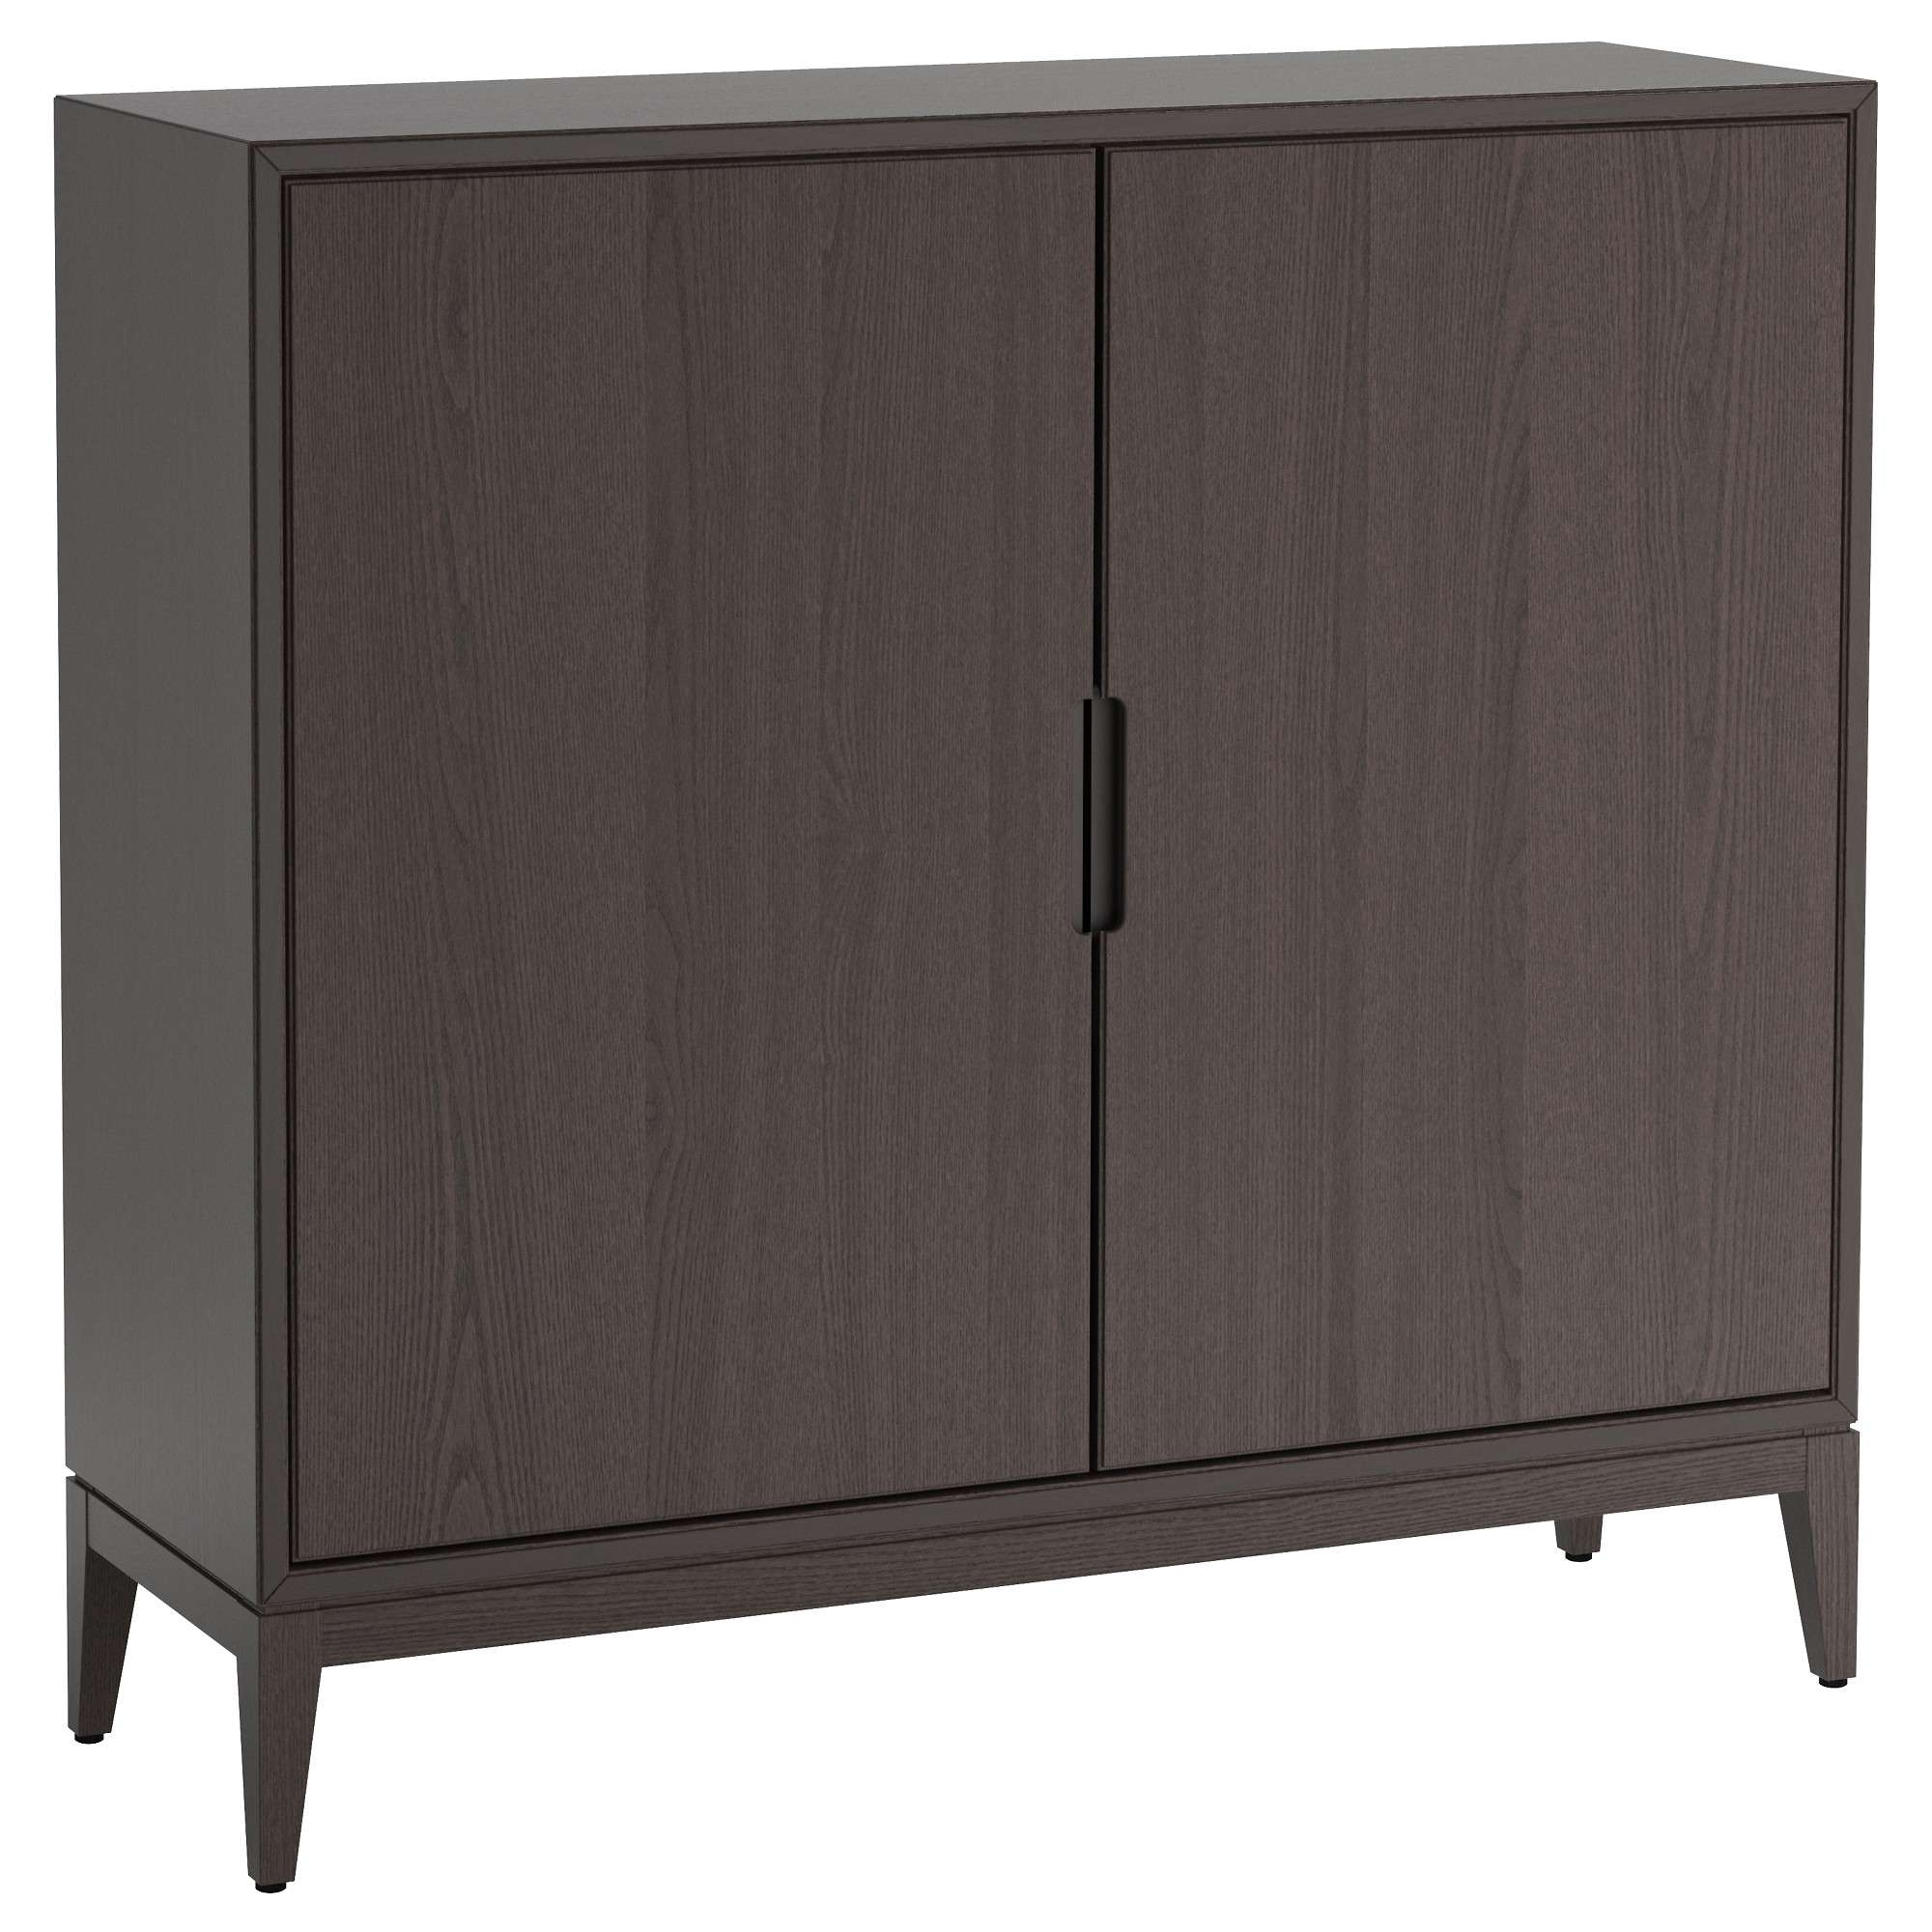 Cabinets & Sideboards – Ikea Within Cheap Sideboards Cabinets (View 1 of 20)